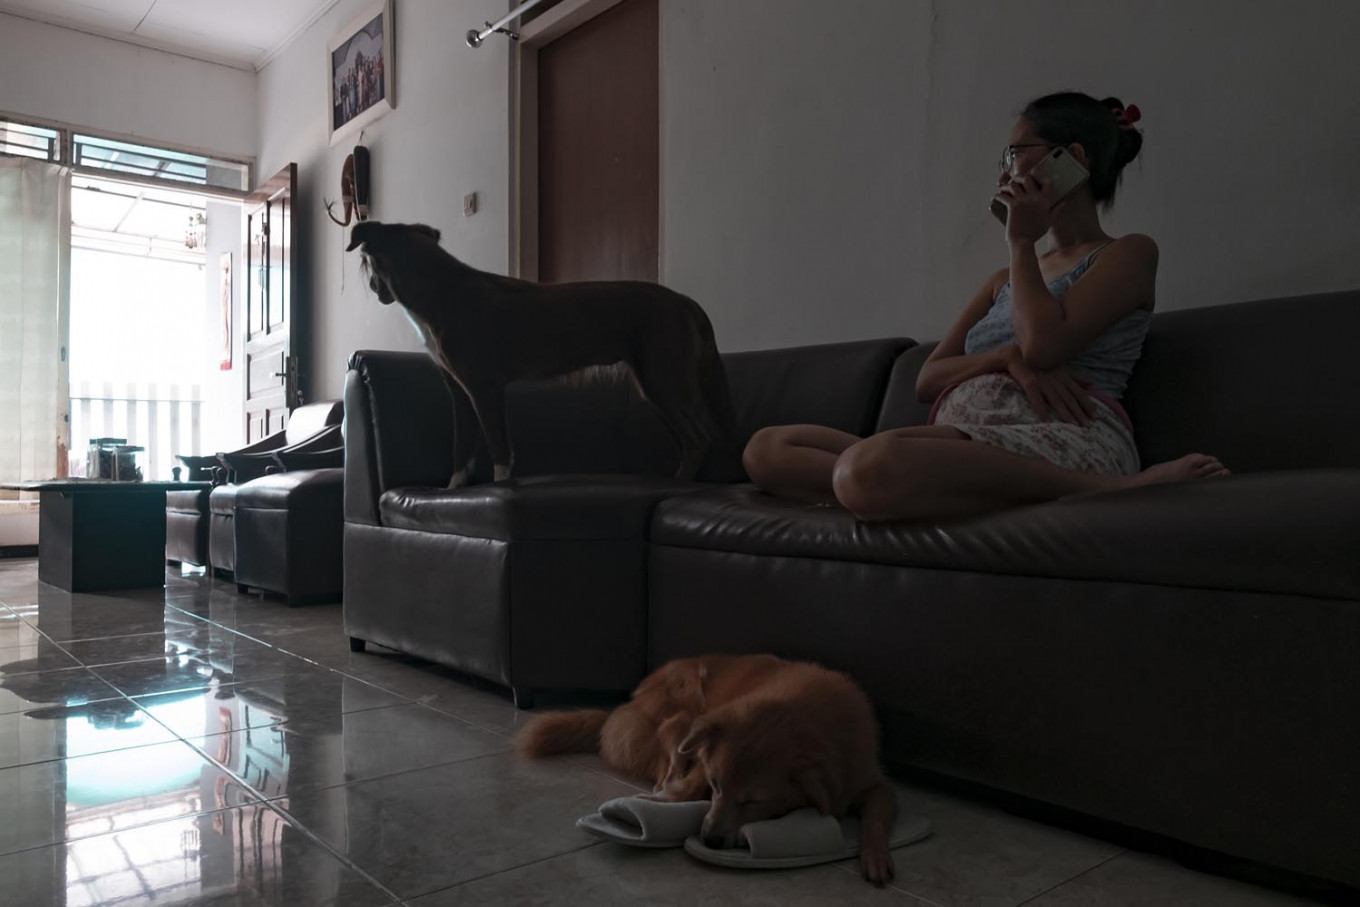 Astri Suryani, a manager at a private company, arranges the salary payments of employees through a phone call at her home in Yogyakarta on April 3. JP/Arnold Simanjuntak